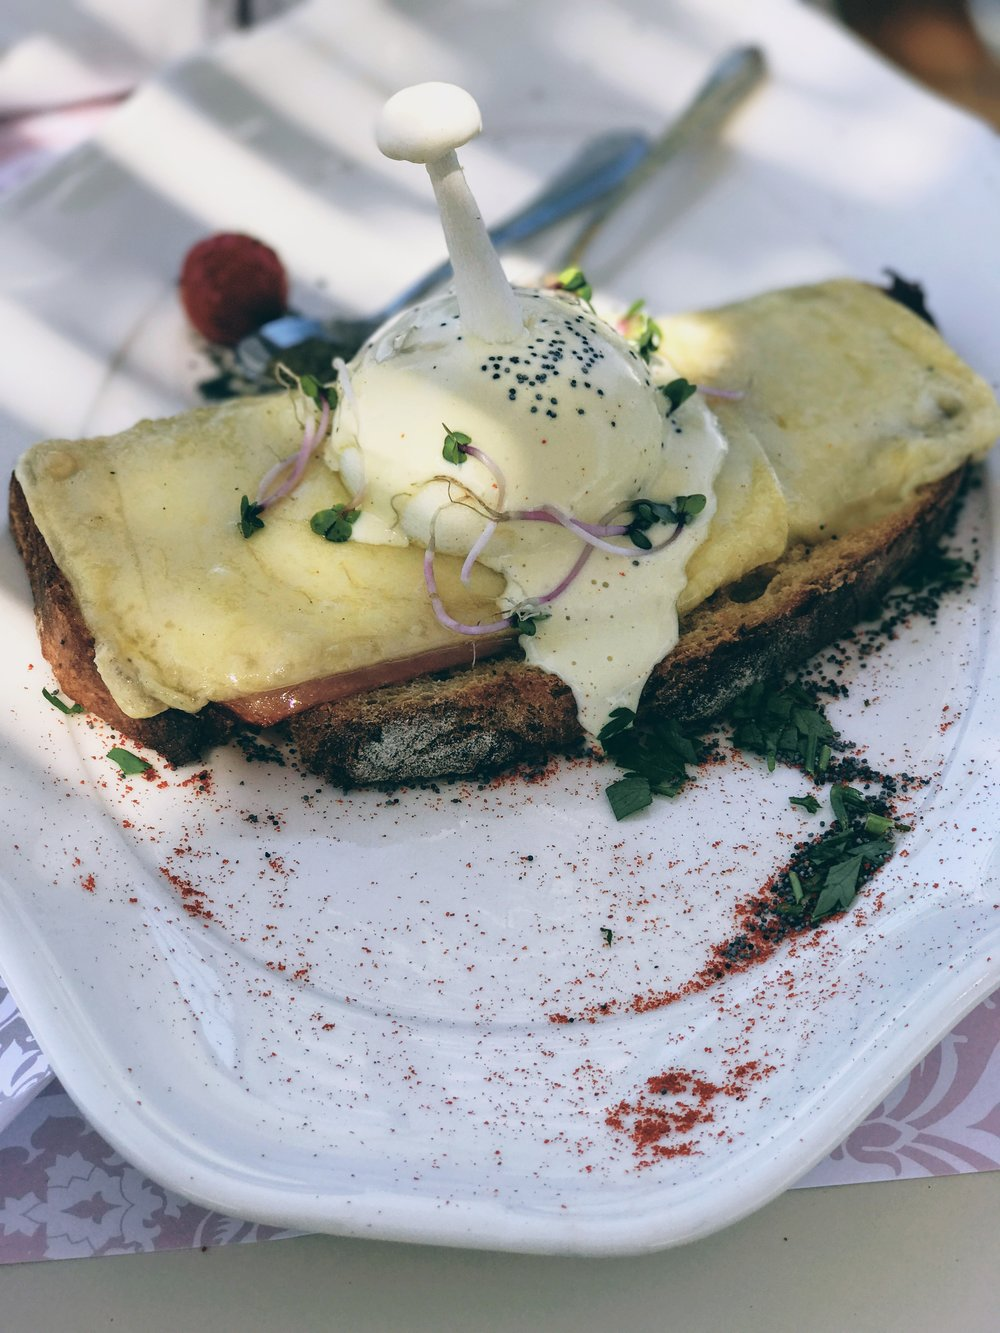 Poached eggs served on farmer's brown bread and a bed of Naxos gruyere cheese and ham